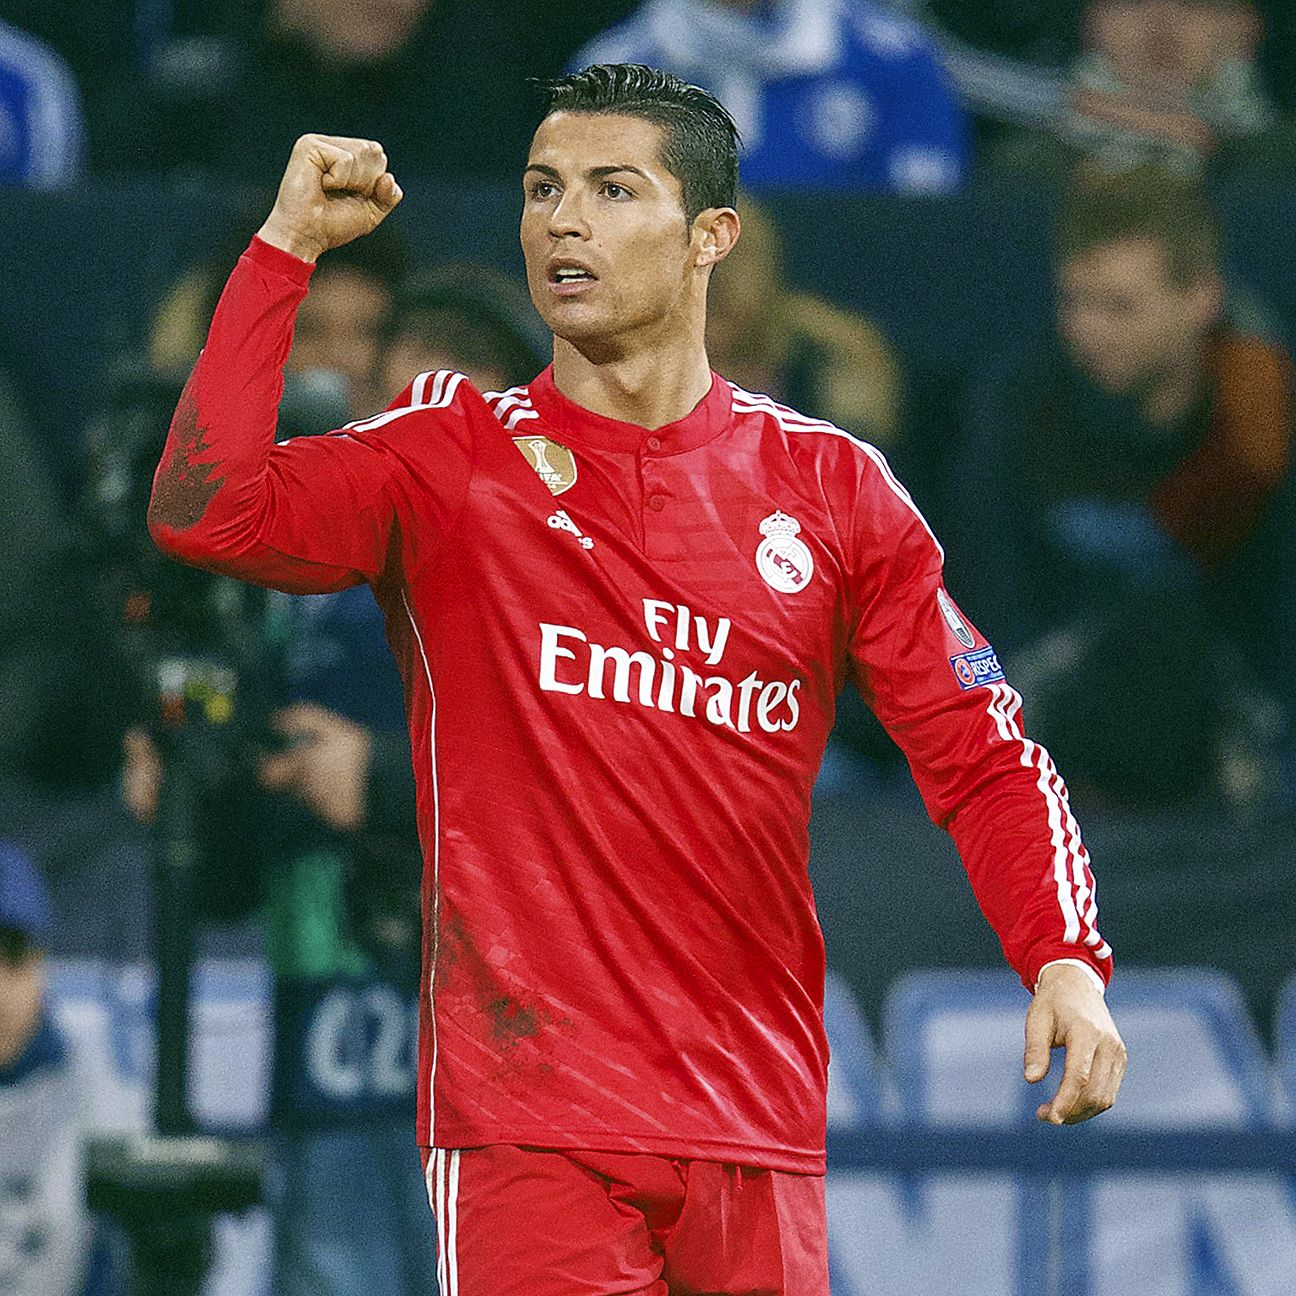 Cristiano Ronaldo and Real Madrid are expected to finish off Schalke on Tuesday at the Bernabeu.